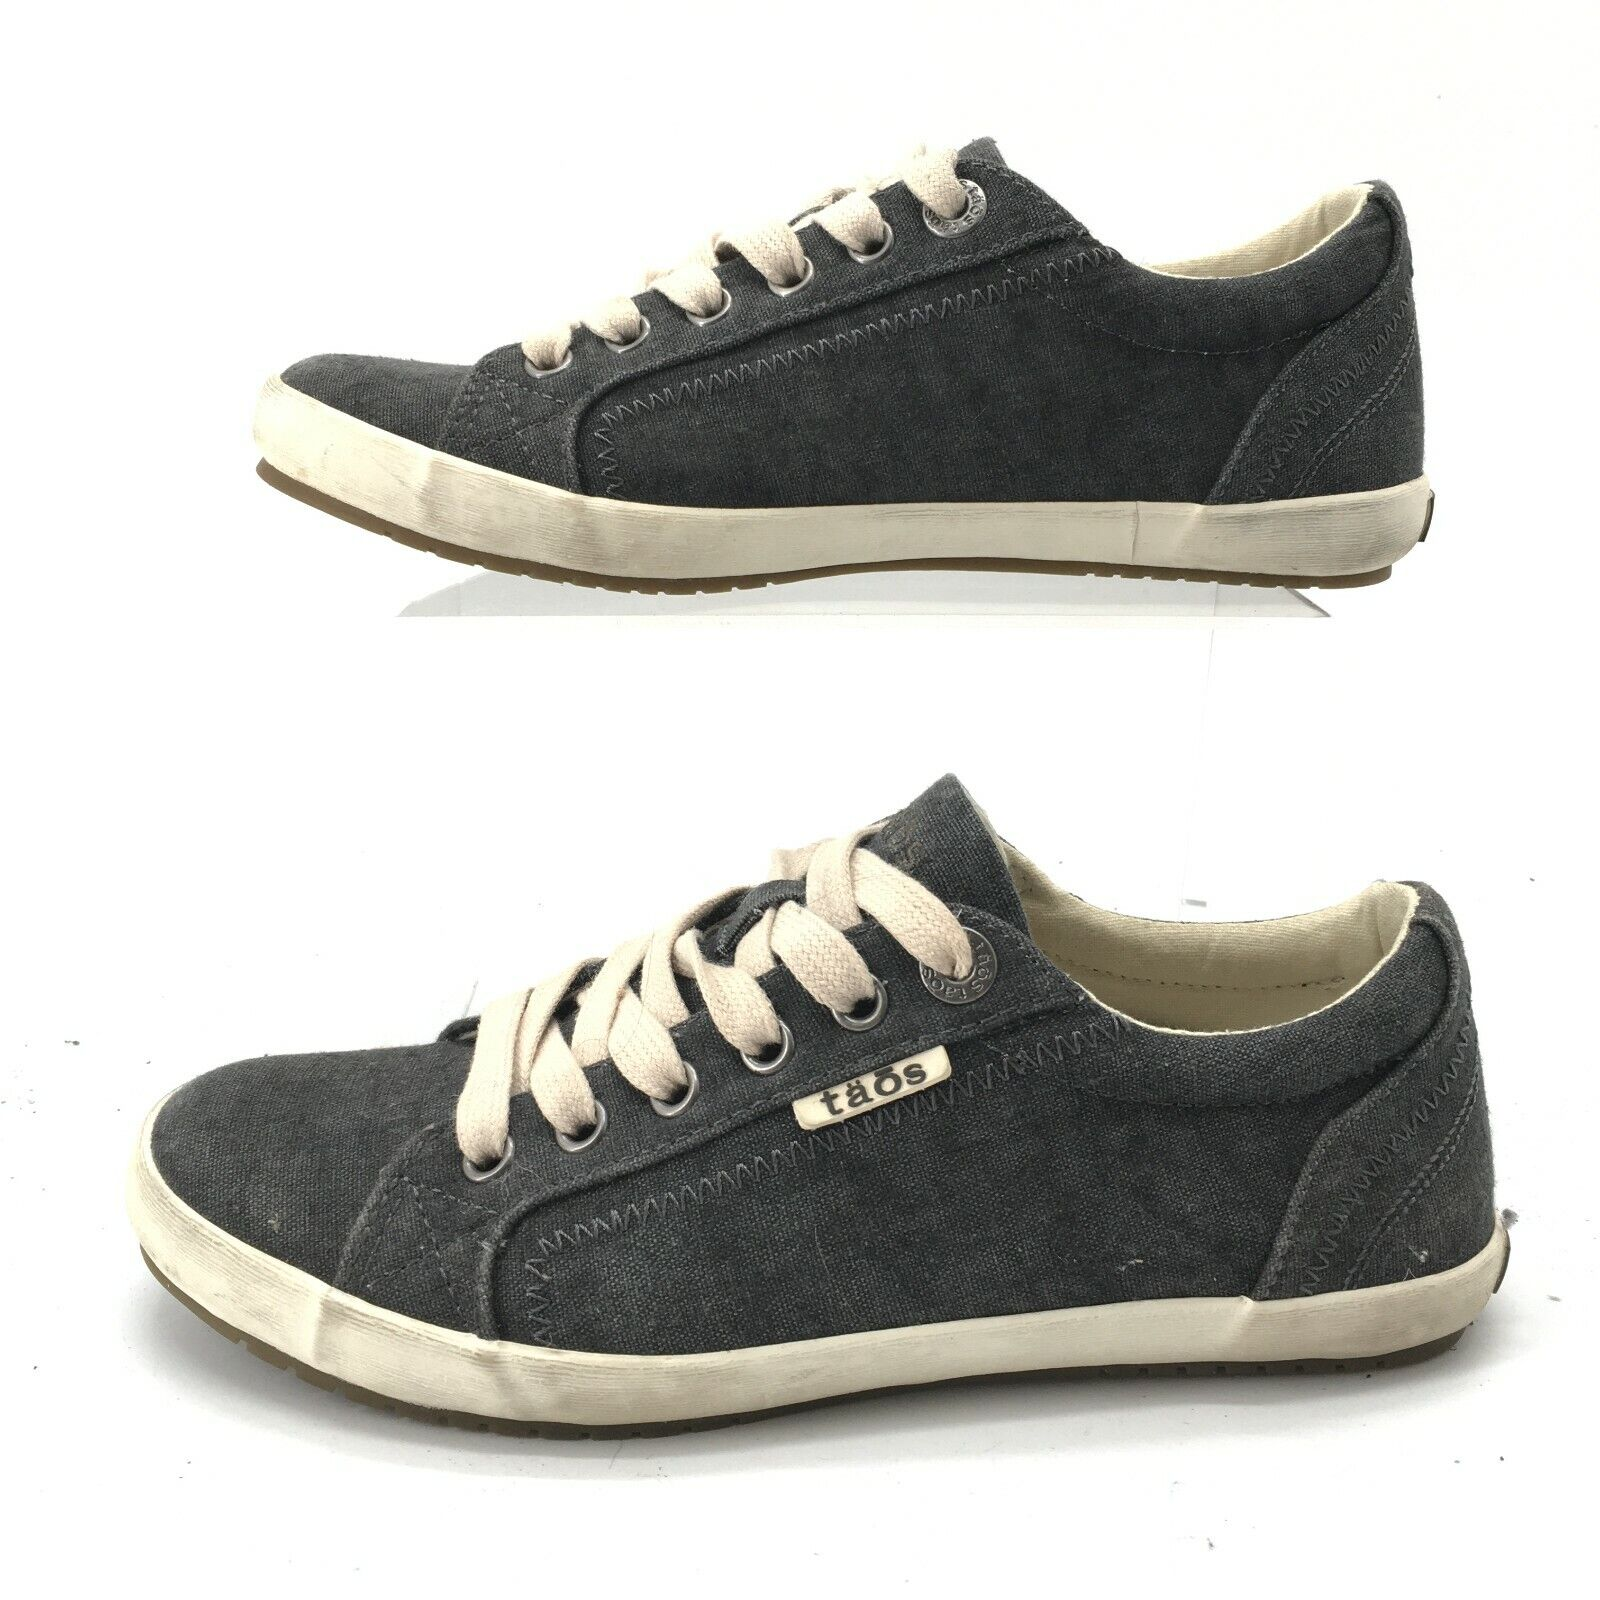 Taos Womens 6 Star Casual Low Top Sneakers Blue Canvas Lace Up Comfort Shoes